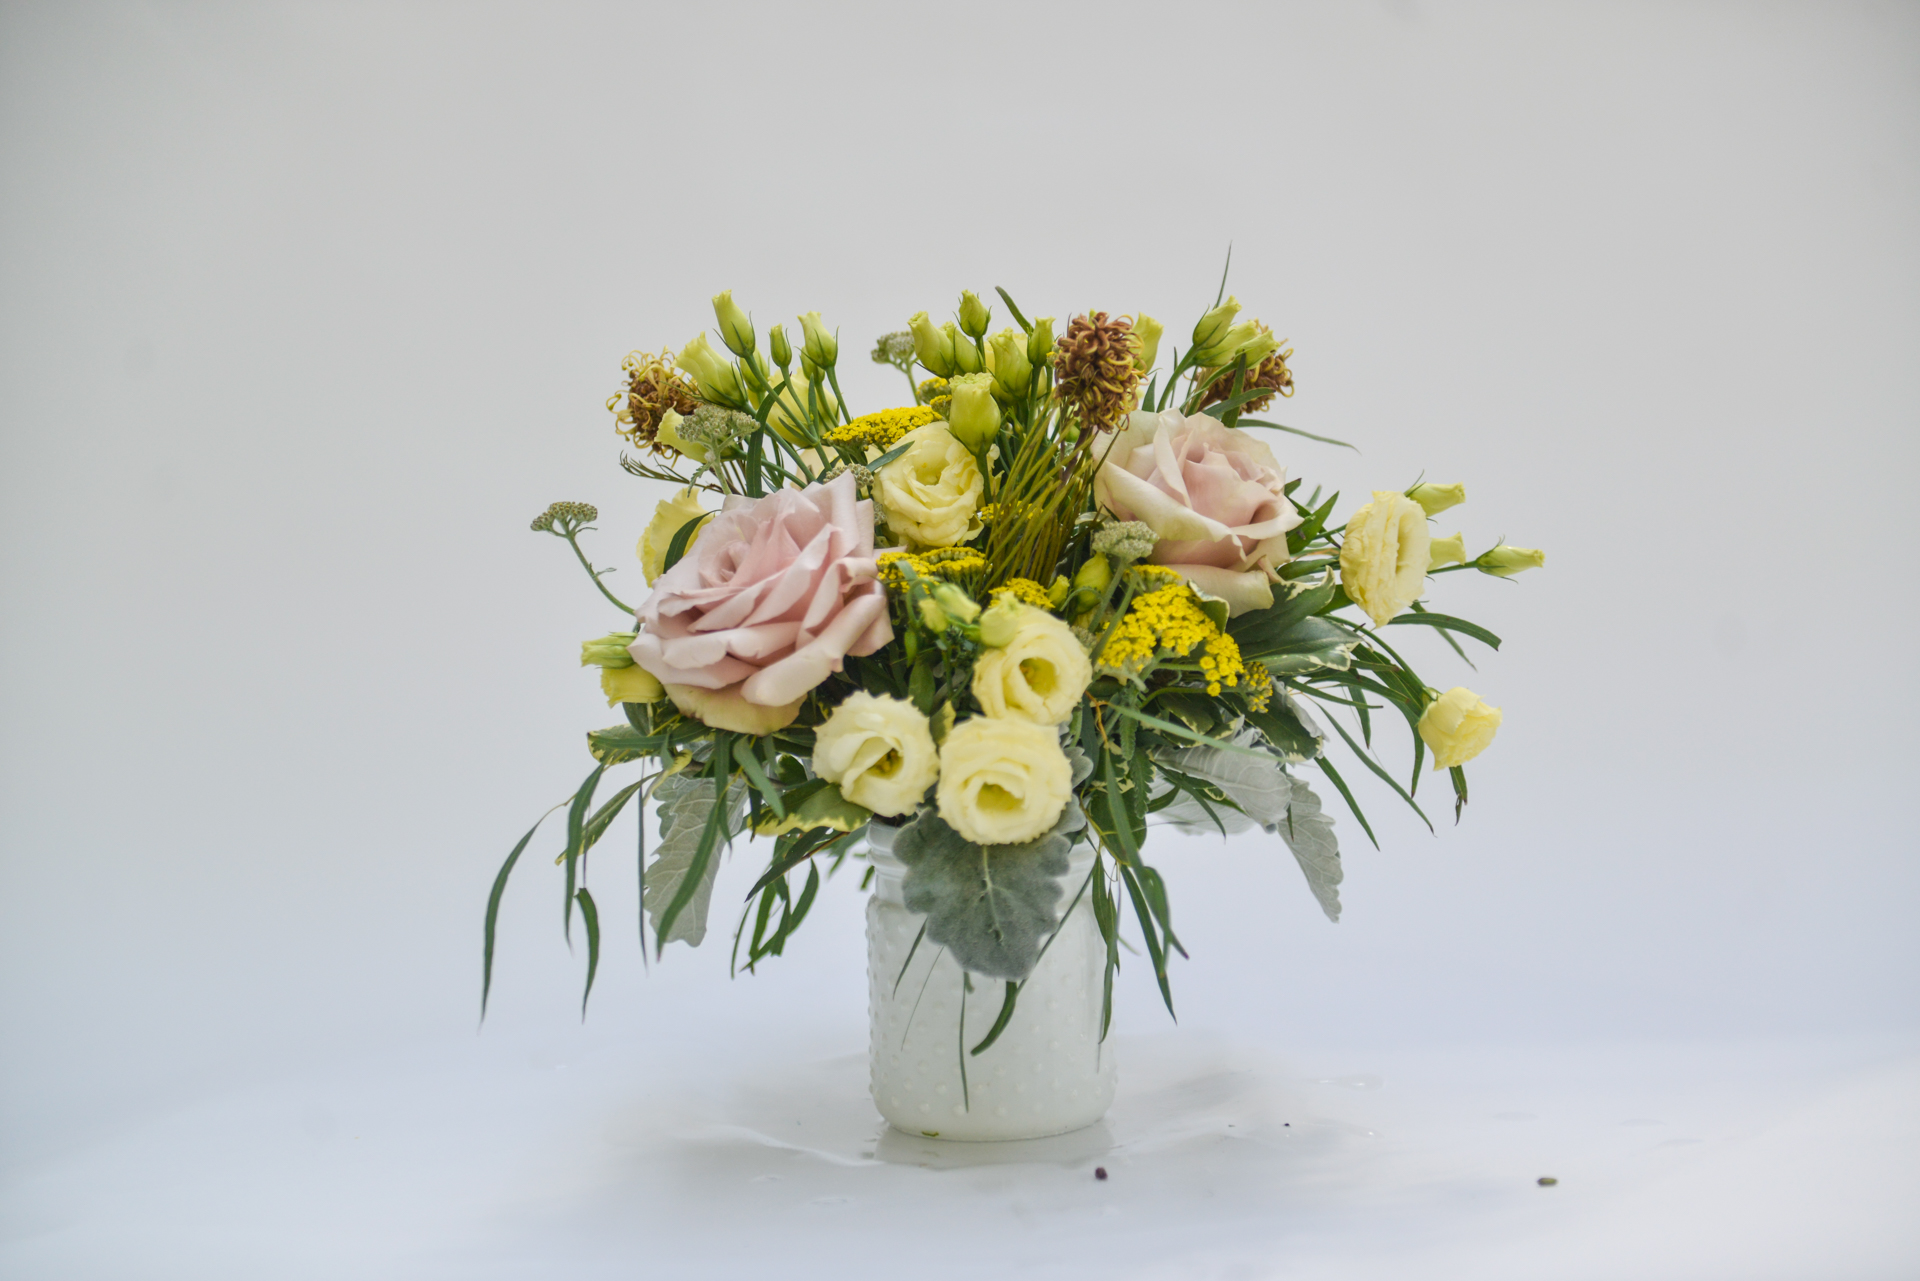 S. Finch Florist by Christine Anson